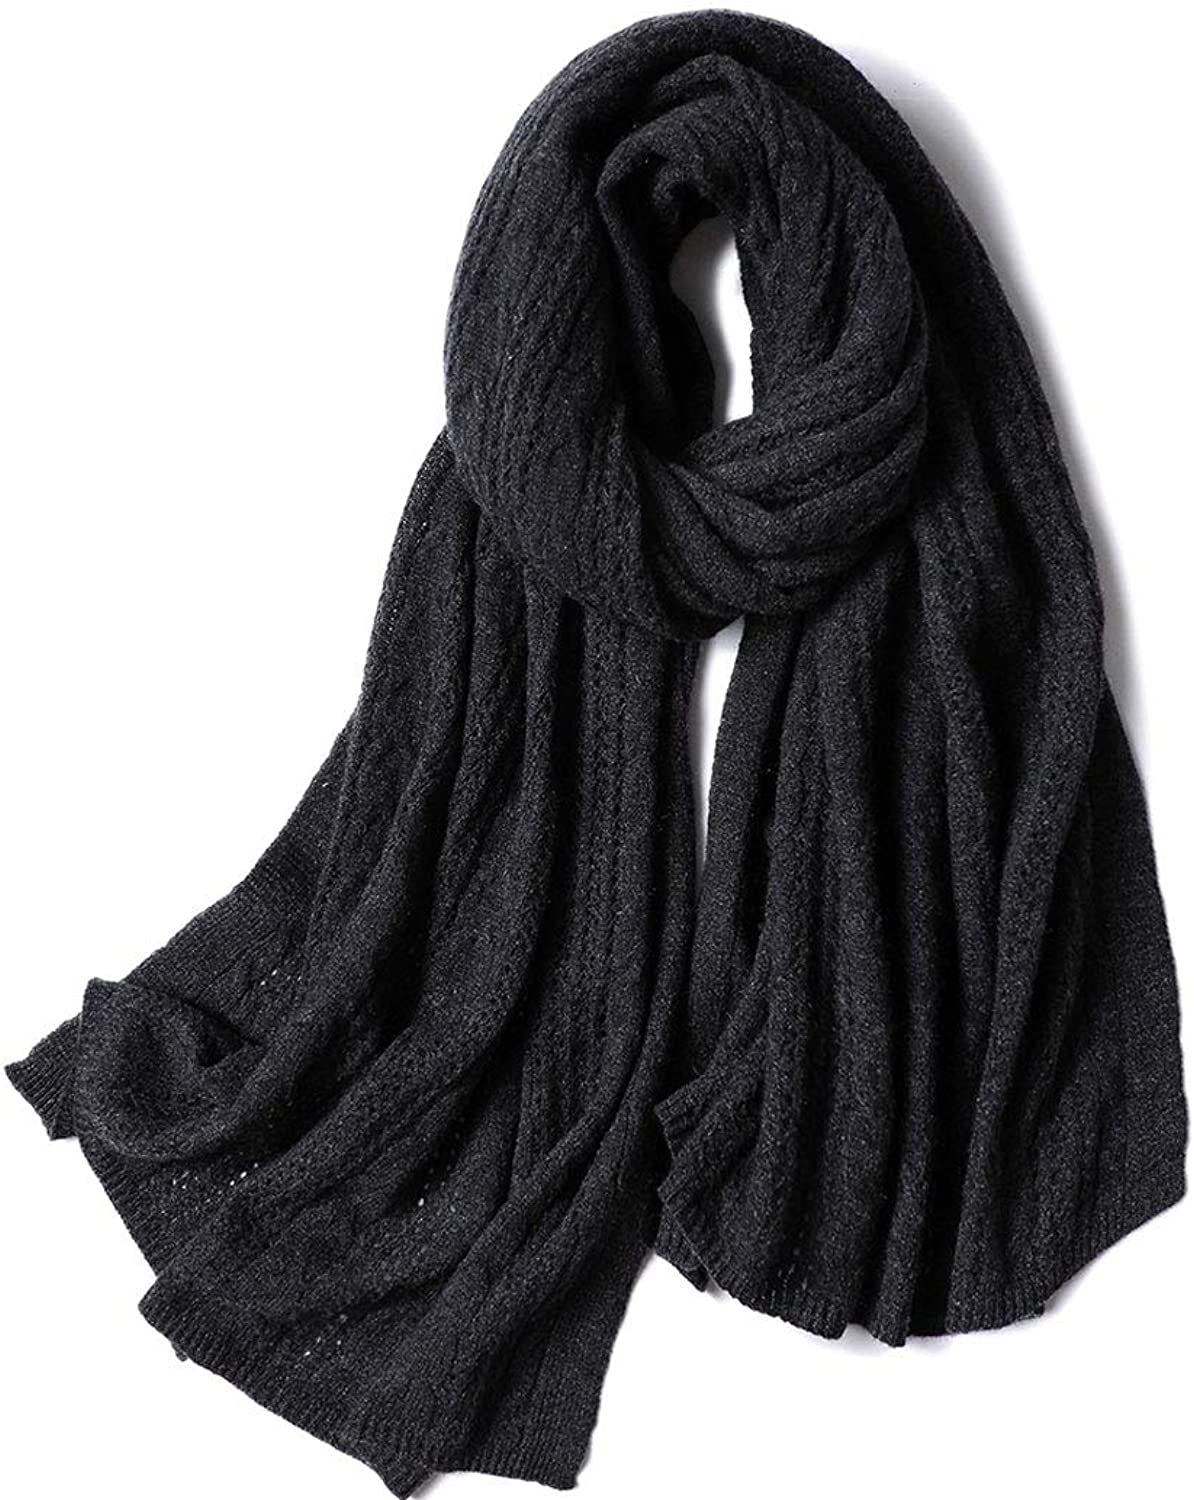 HUIFEI Cashmere Scarf Men's and Women's Autumn and Winter Scarves 18 New Large Shawl Fashion Gift Scarf 90  220CM (color   Black, Size   70  180CM)